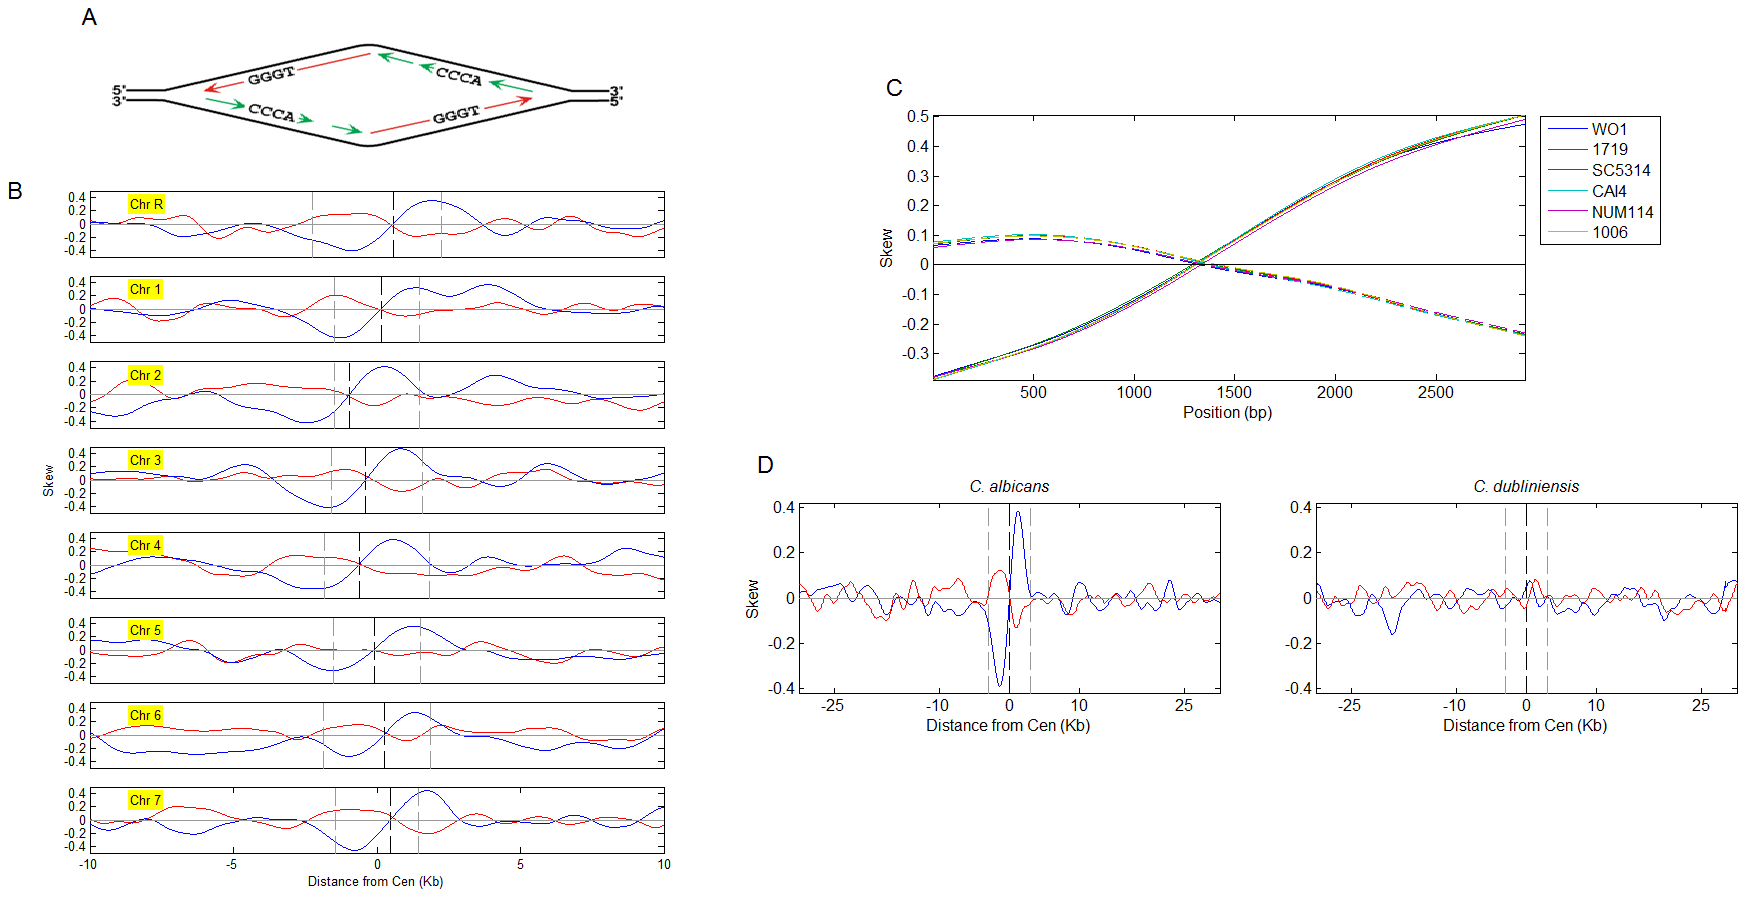 Nucleotide skew patterns and their correlation to syntenic conservation of centromere position.